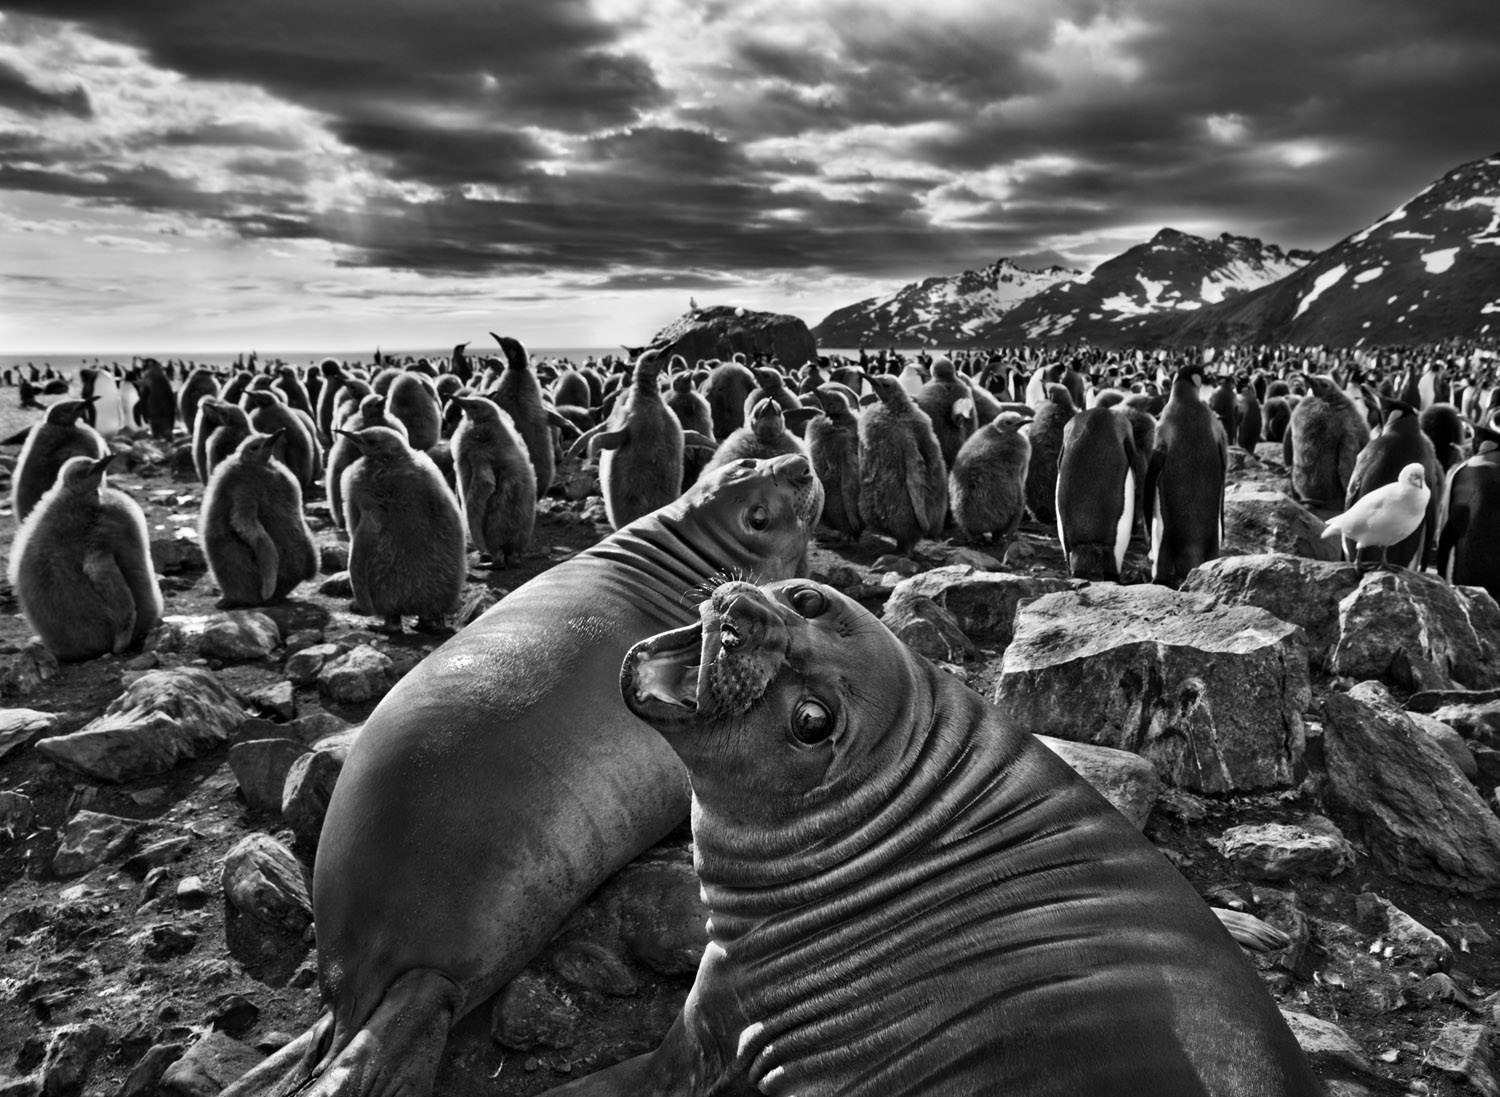 """On South Georgia, a barren island in the far South Atlantic, a pair of southern elephant seal calves beckon before a colony of king penguins. """"The male seals can grow to almost five tons,"""" says Salgado, """"butthese are just babies. This one looked at mewith beautiful eyes."""""""